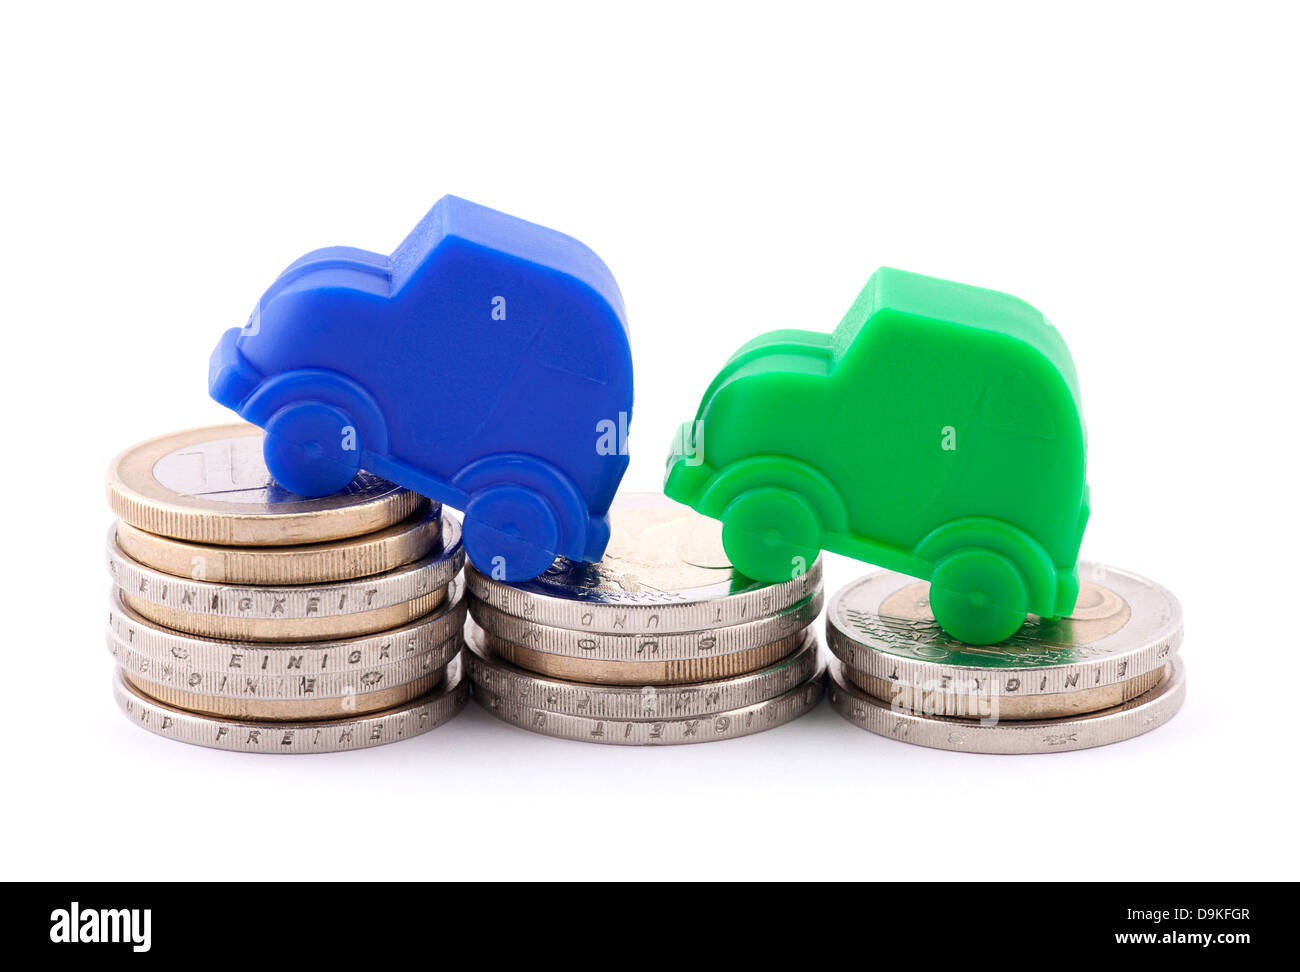 Euro coins and cars - Stock Image